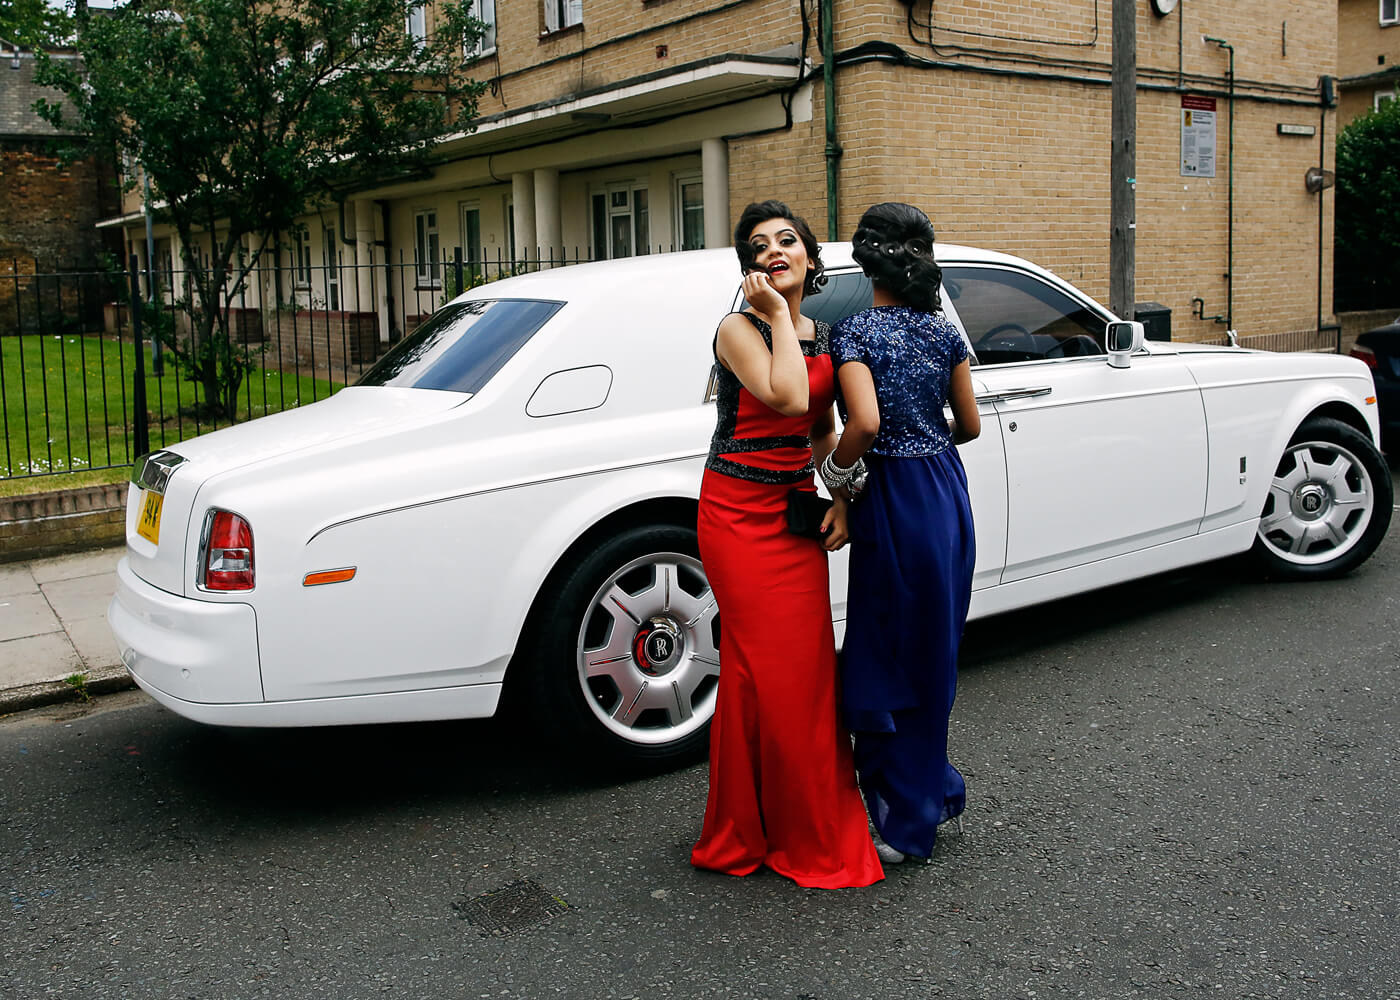 Tahmina Ahmed, 16, poses in front of a Rolls Royce.